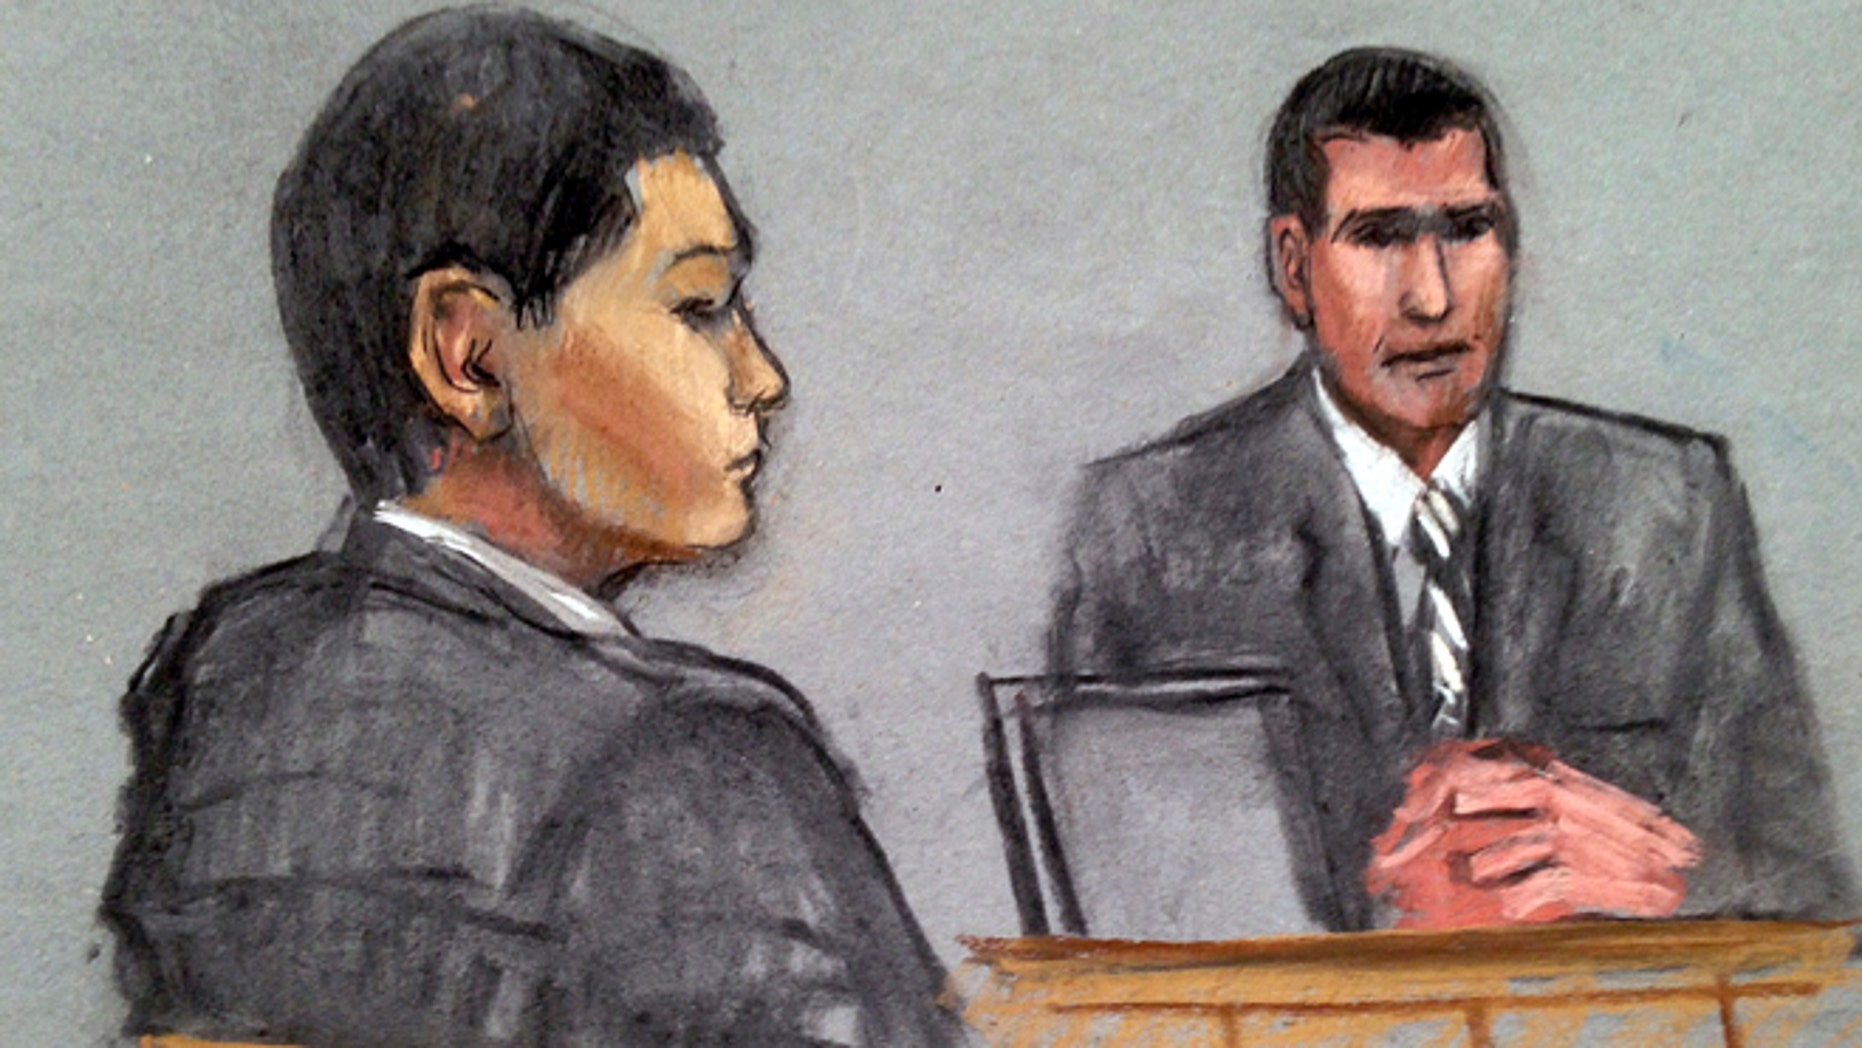 July 7, 2014: In this courtroom sketch, defendant Azamat Tazhayakov, left, a college friend of Boston Marathon bombing suspect Dzhokhar Tsarnaev, is depicted listening to testimony by FBI Special Agent Phil Christiana, right, during the first day of his federal obstruction of justice trial in Boston. Tazhayakov, of Kazakhstan, is accused with another friend of removing items from Tsarnaev's dorm room, but is not charged with participating in the bombing or knowing about it in advance.